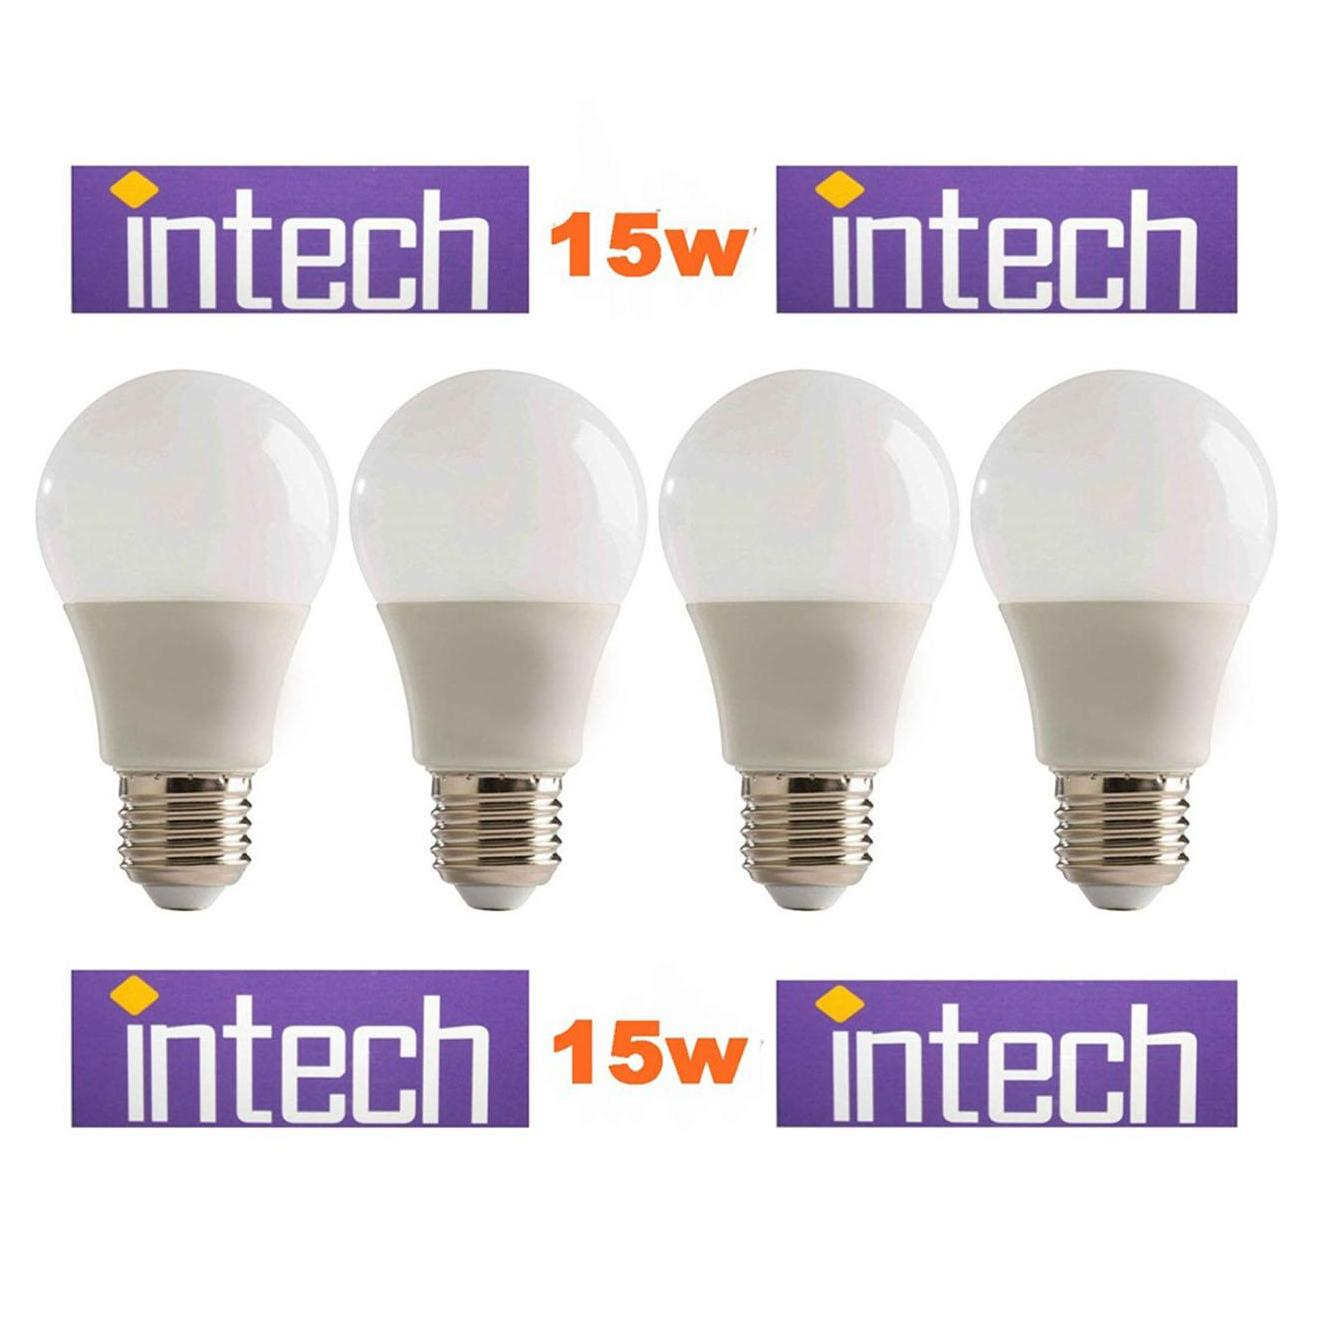 Jual Lampu Bohlam Bulb Buy 1 Get Free Usb Led 5 Watt Emergency Intech 15w 15wat 15 W Paket 4 Pcs Putih